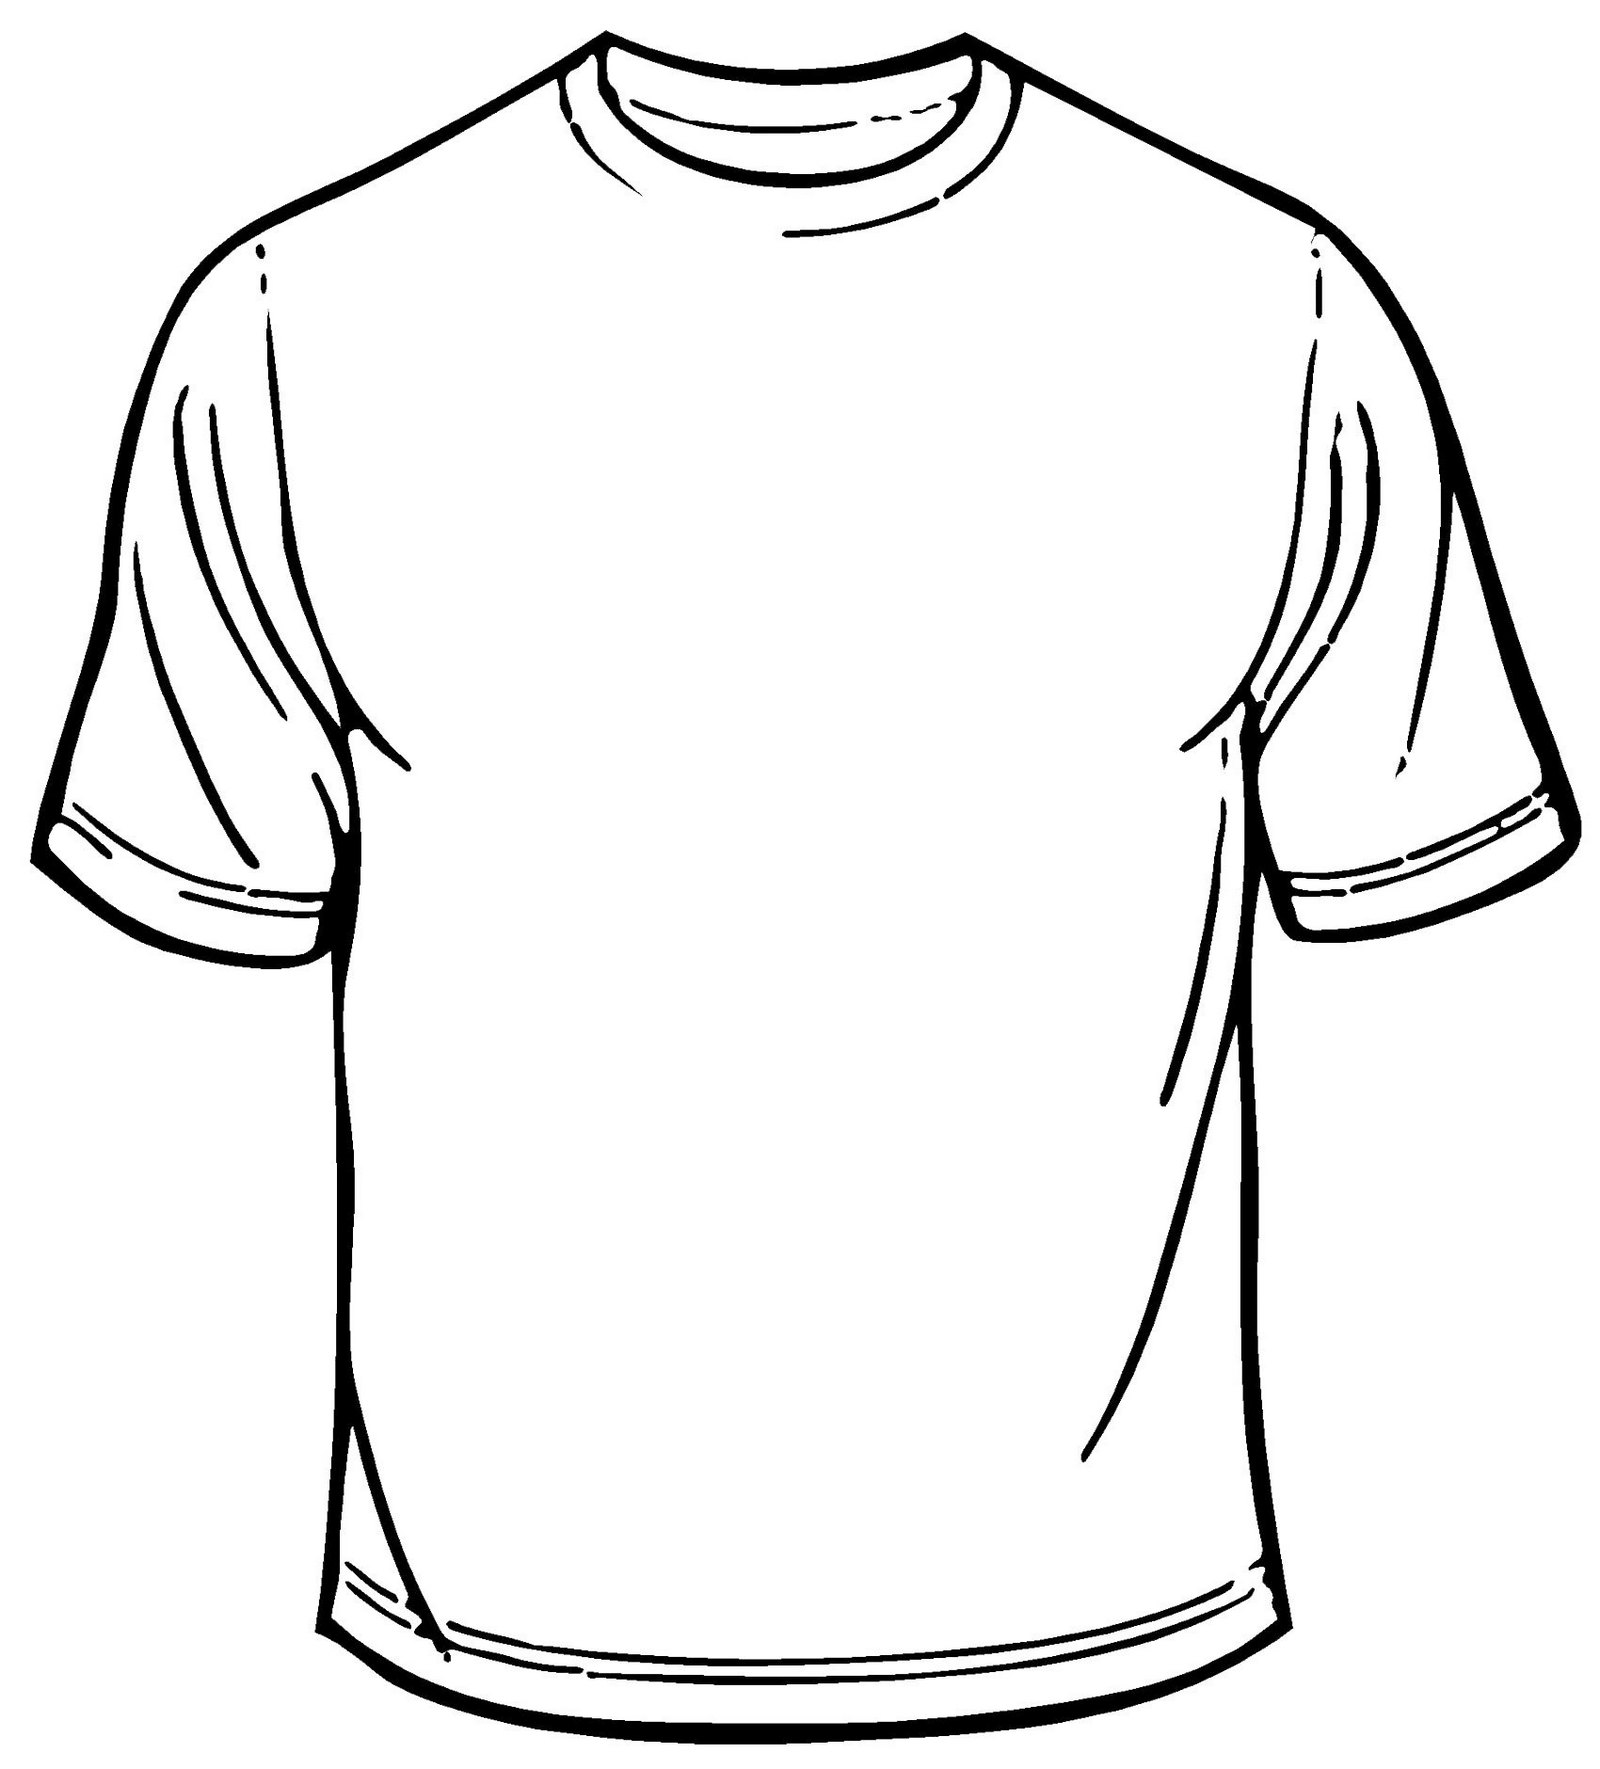 blank t shirt coloring sheet printable